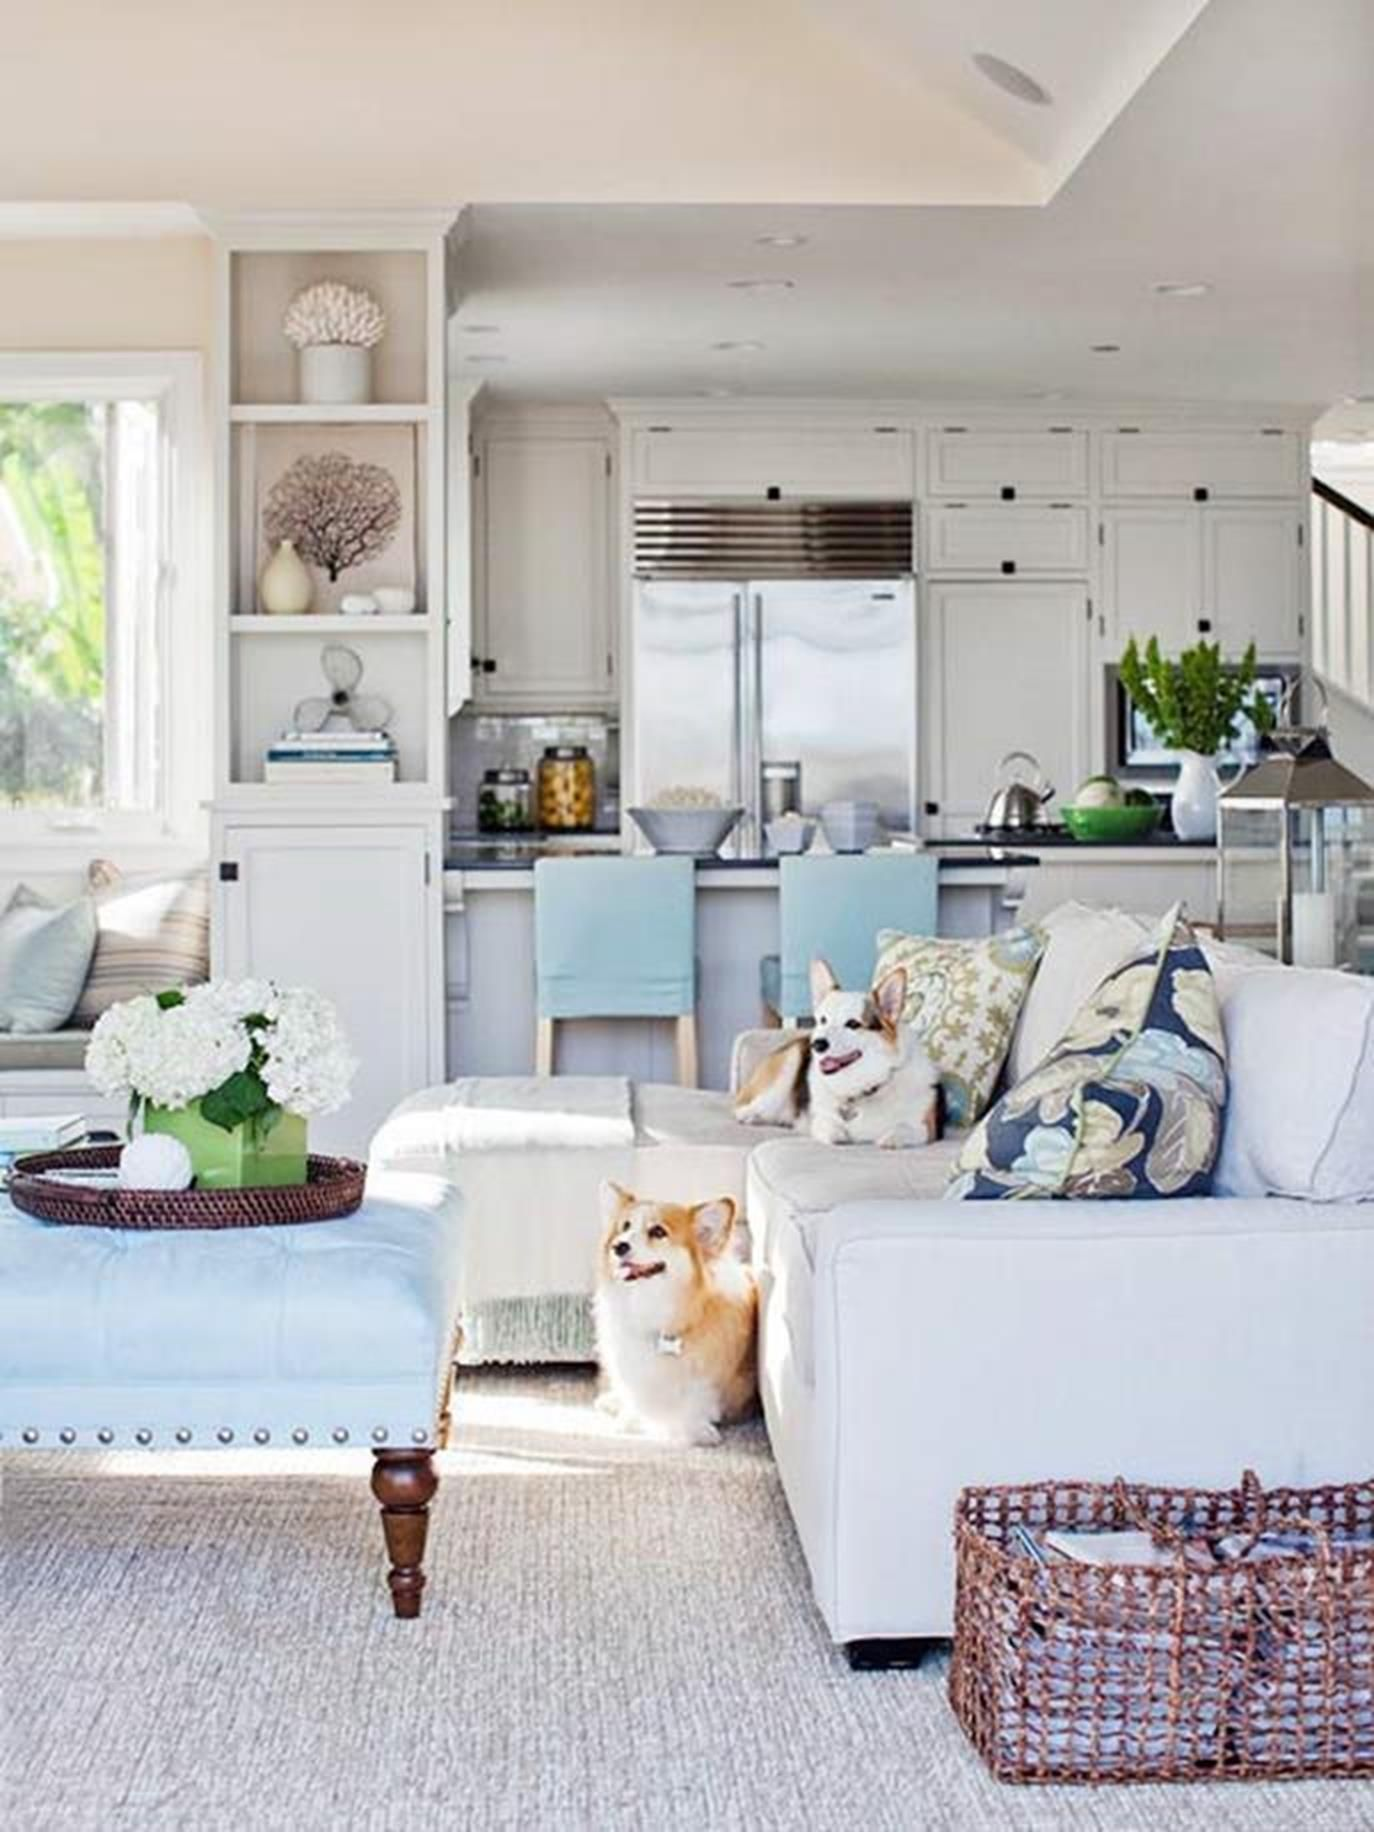 32 Amazing Coastal Living Room Decorating Ideas On A Budget ...